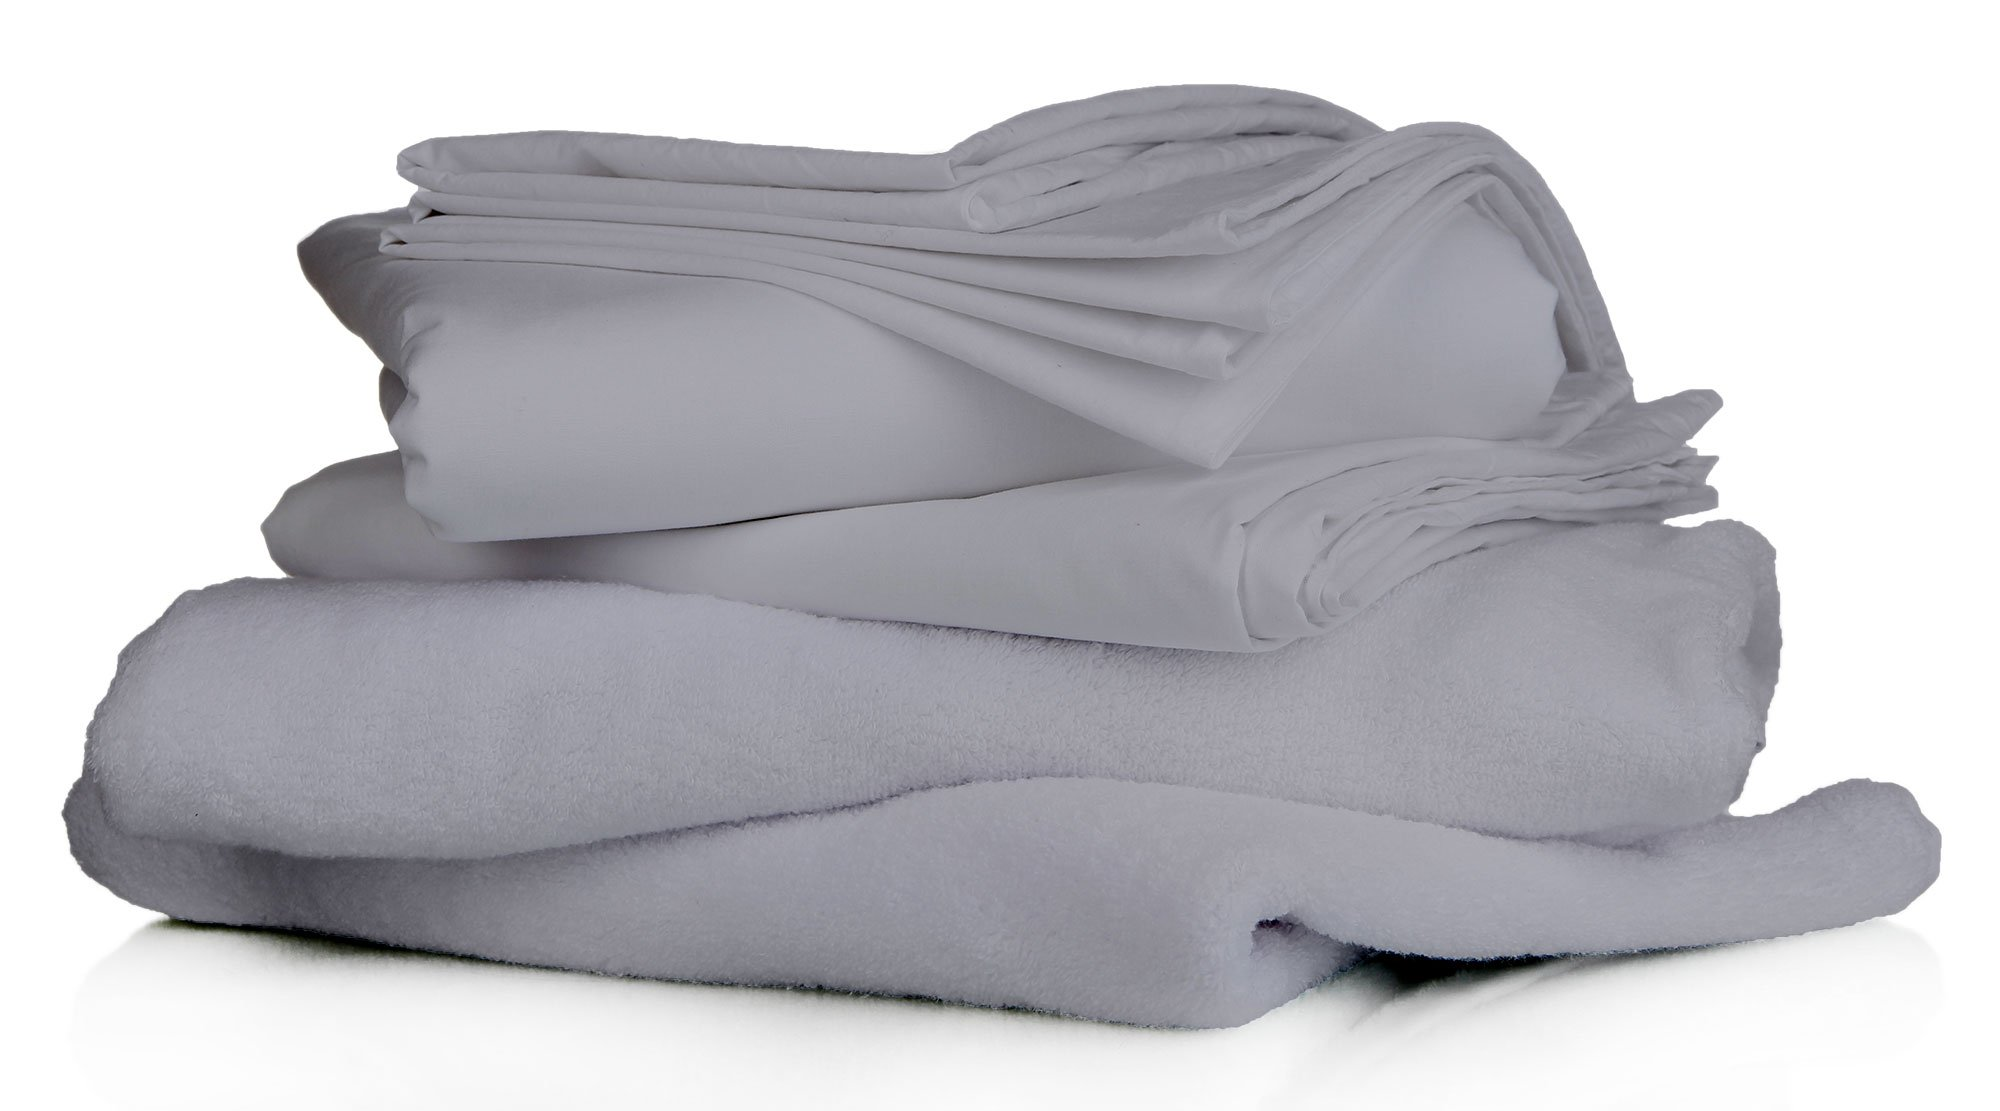 TOT AMERICA 100% Premium HOTEL LIKE Quality Soft EGYPTIAN Cotton ITALIAN FINISH MADE IN USA Sheet Set 600 TC Fits Up to 19 Inches Deep Pocket Solid (King, Silver Grey)